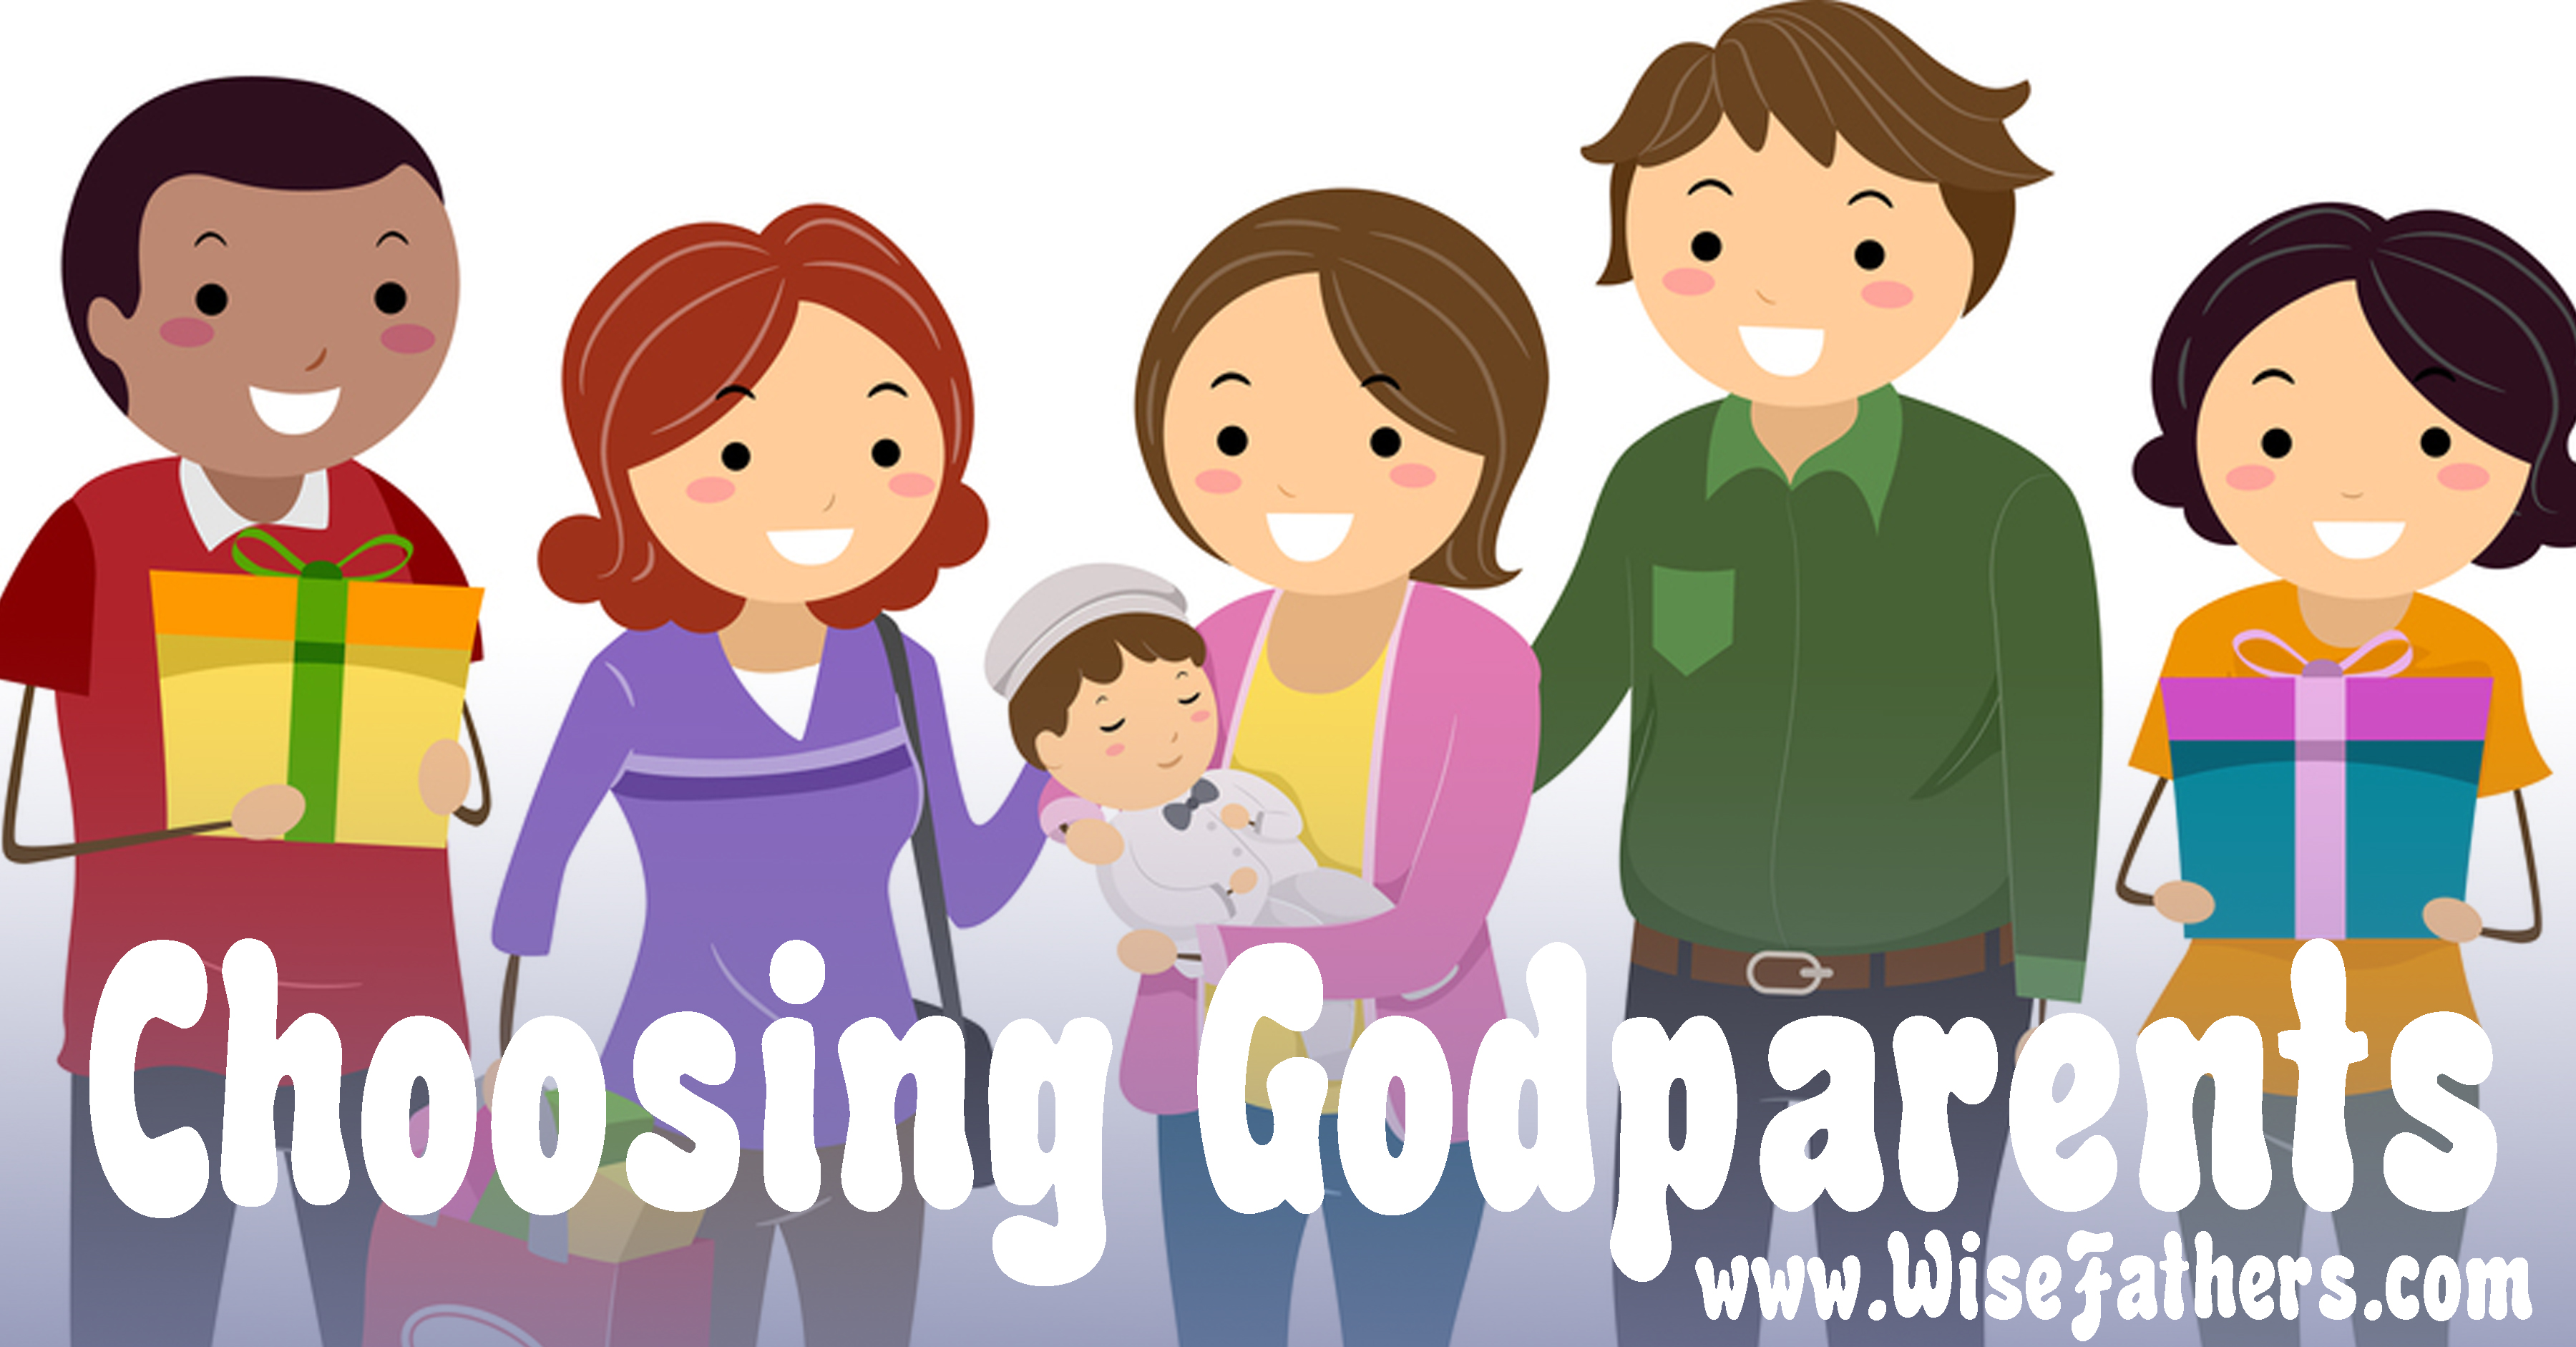 Choosing Godparents